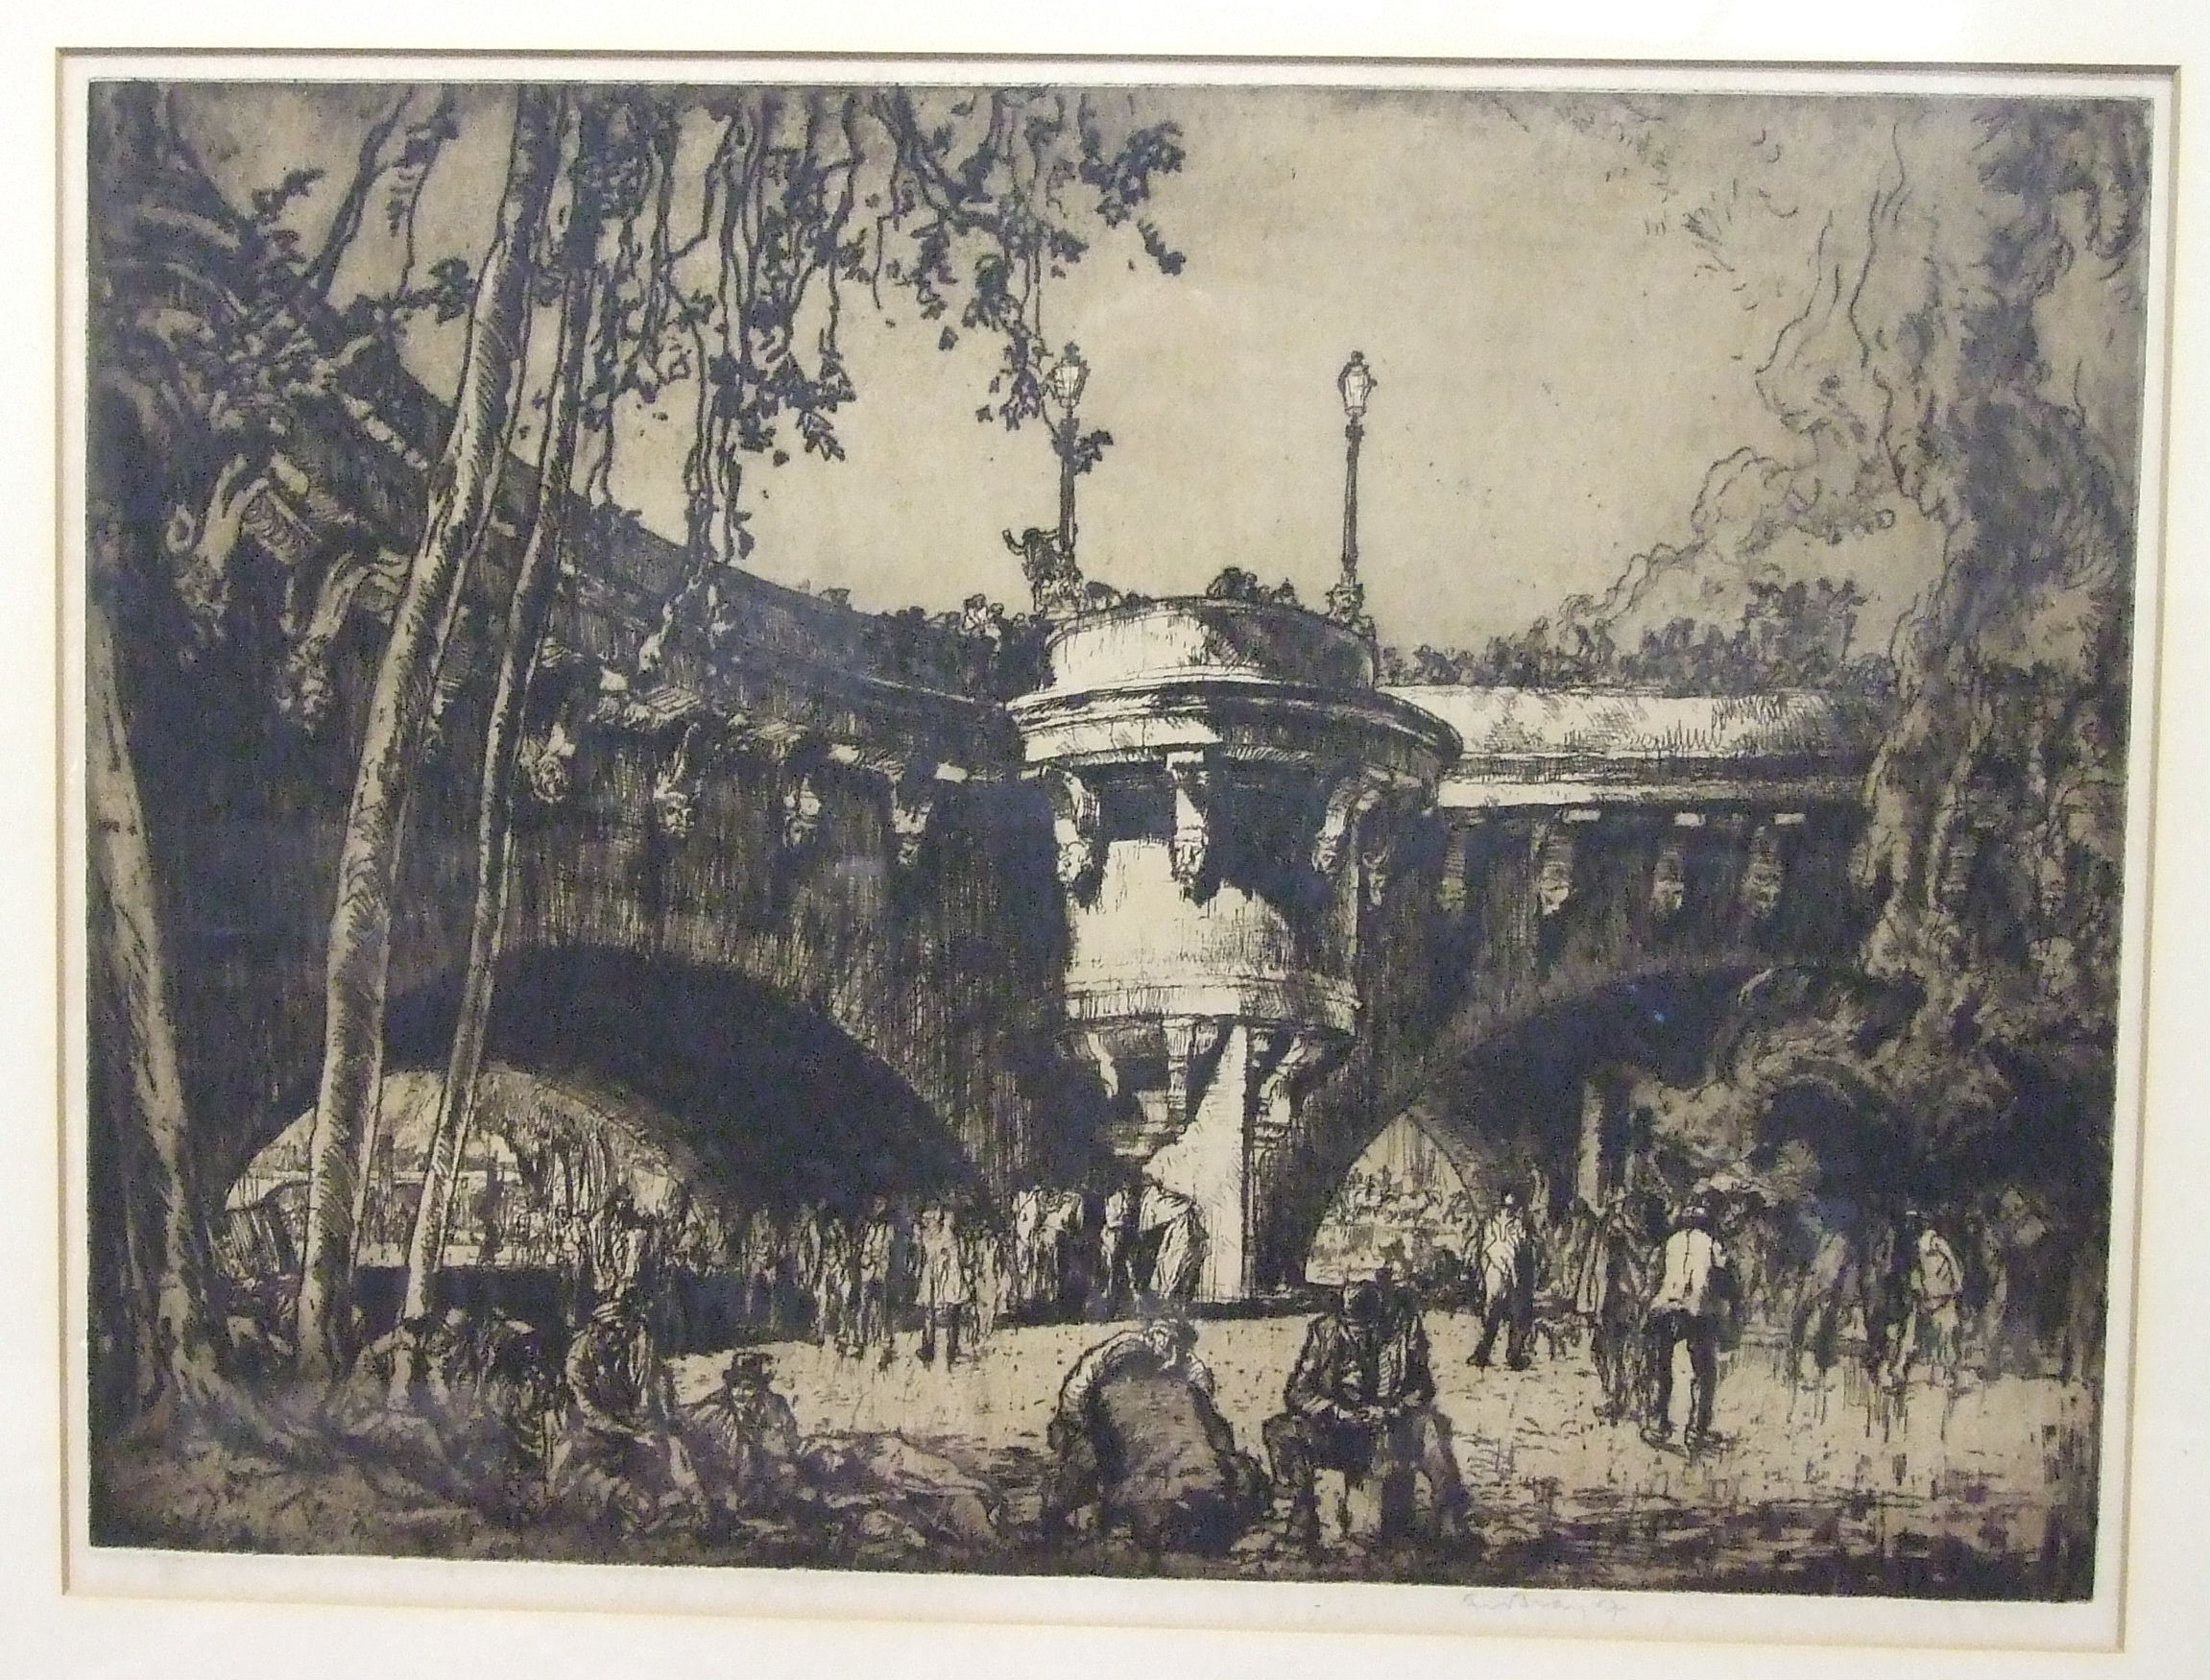 Lot 48 - •After Sir Frank Brangwyn RA RWS RBA (1867-1956), 'The Viaduct', engraving, signed in pencil in